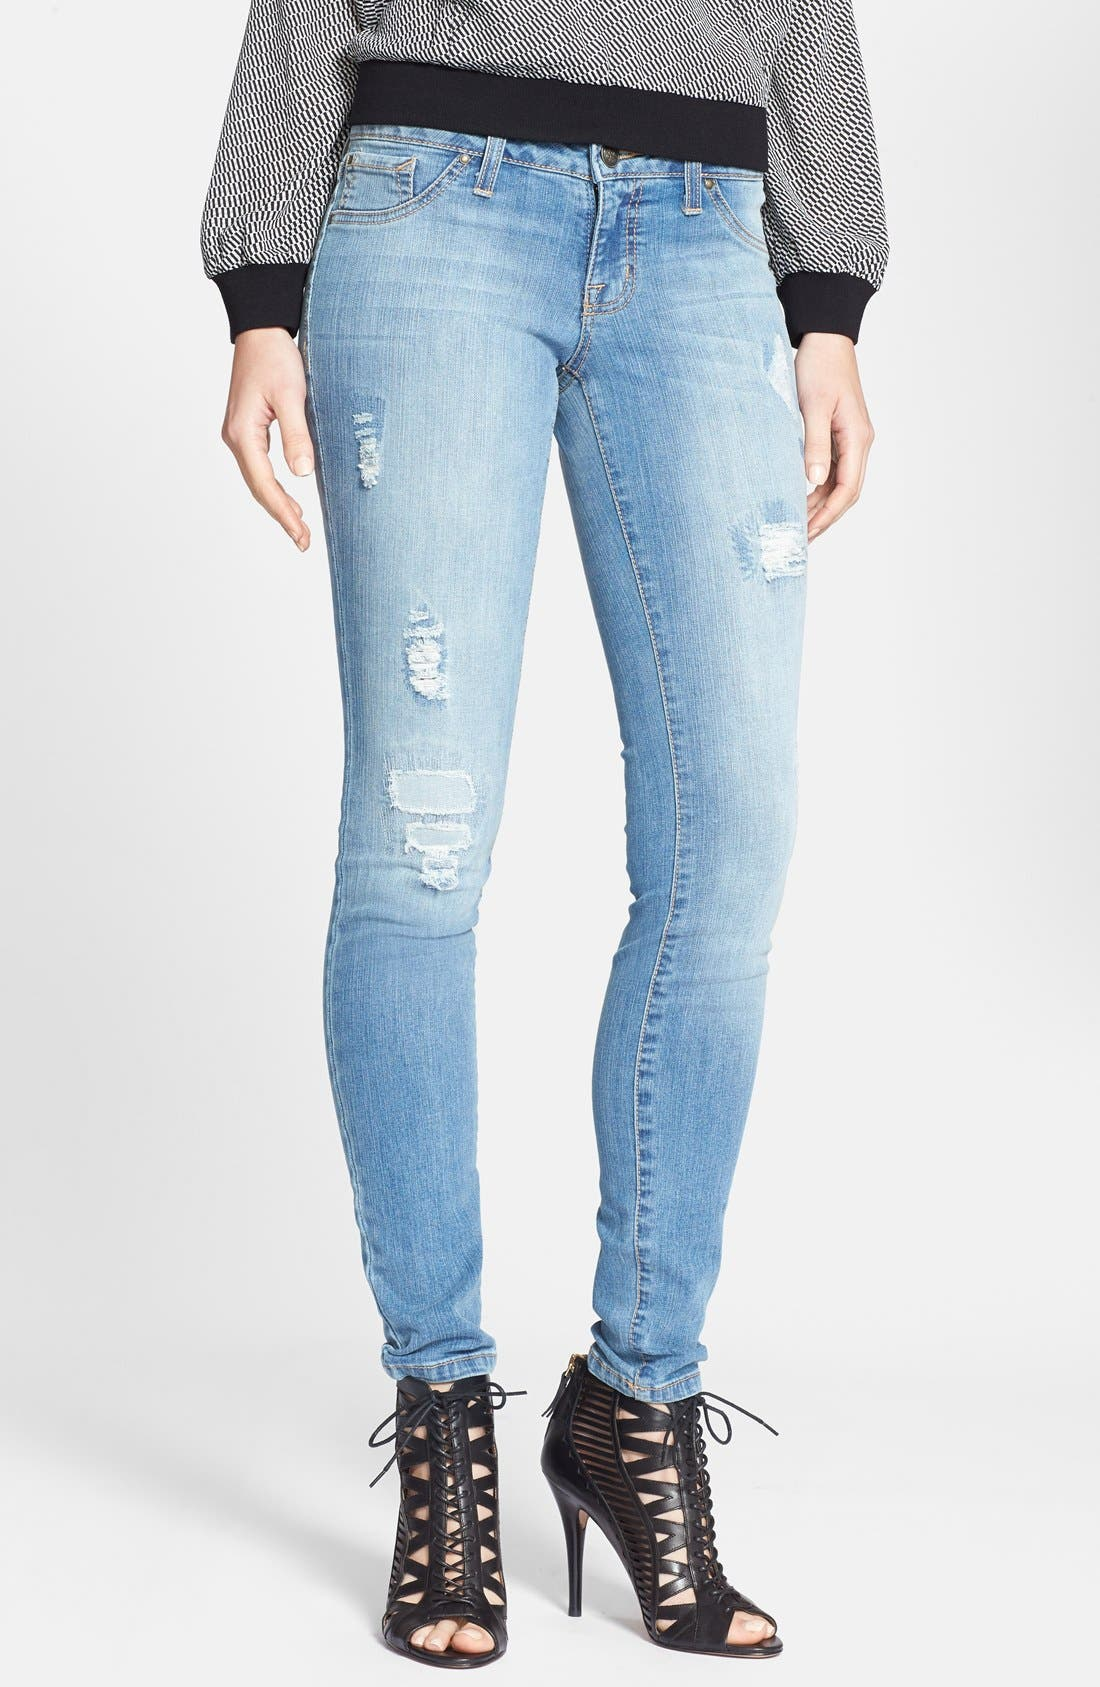 Main Image - Jessica Simpson 'Kiss Me' Deconstructed Skinny Jeans (Powder Blue/Dynamic)